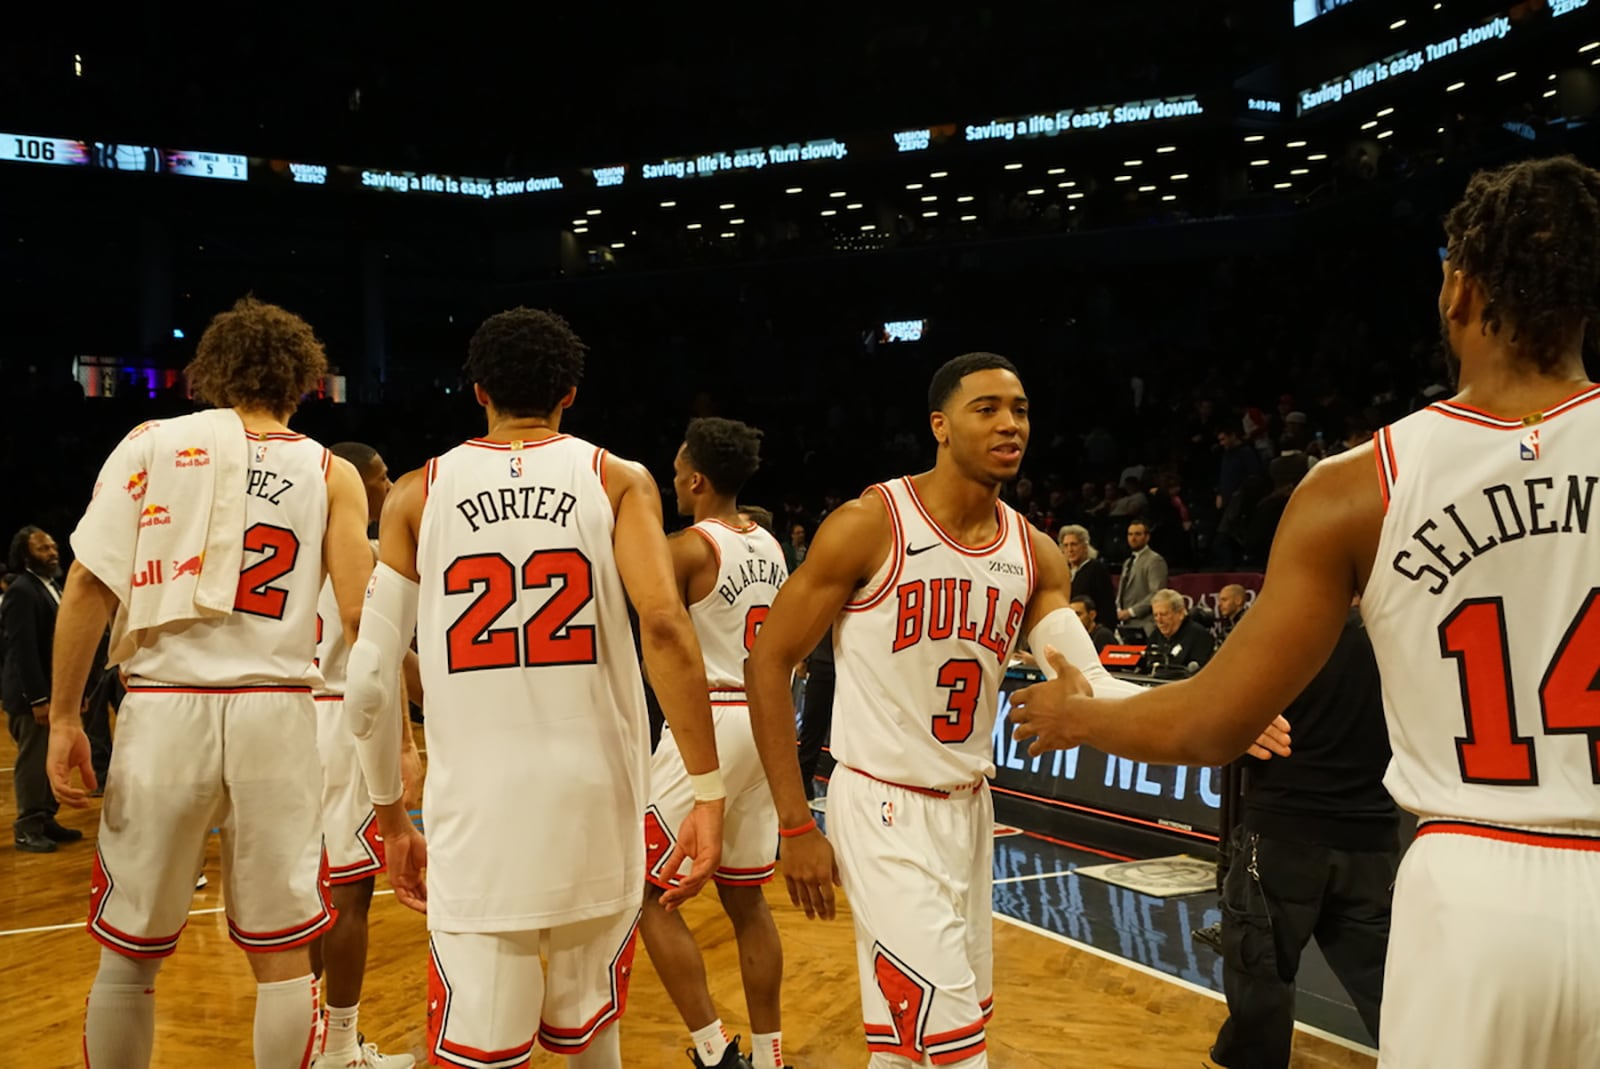 Team High Fives from the Bulls as they beat the Nets